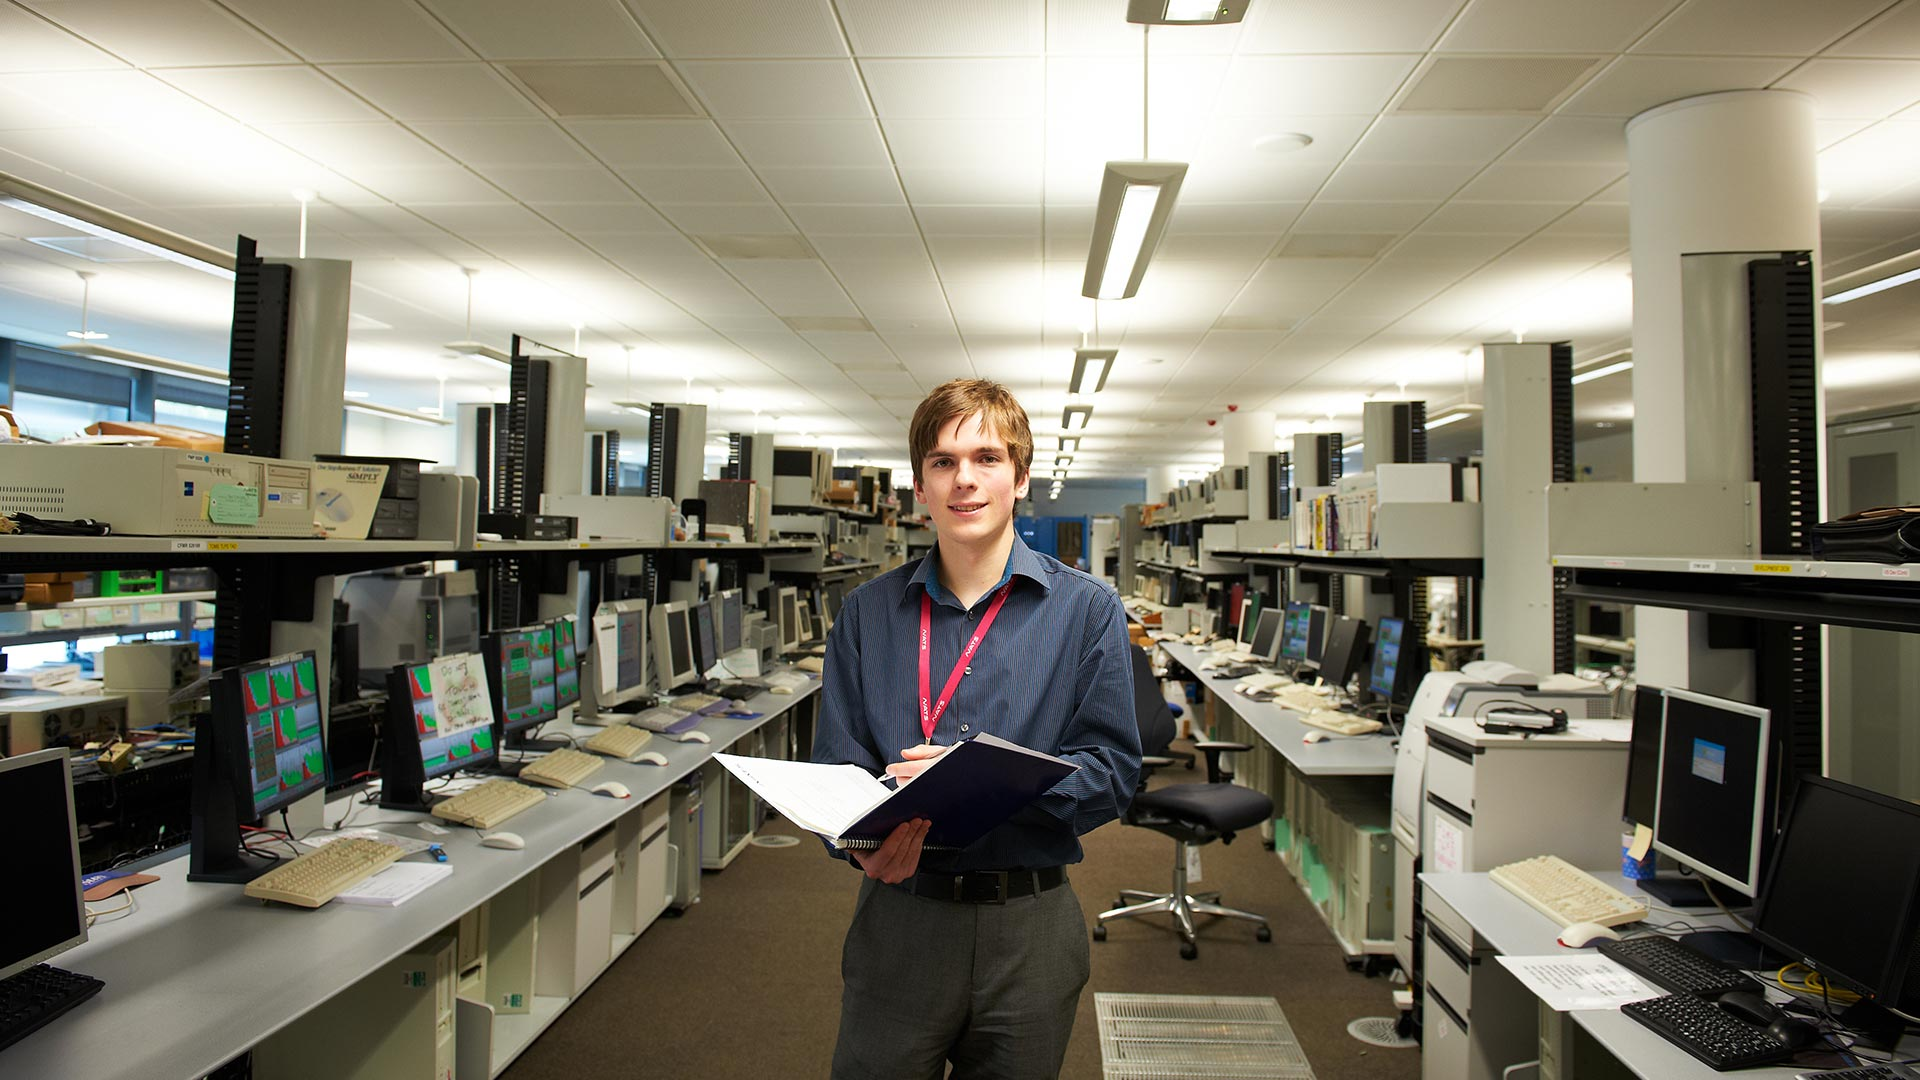 A student on placement at National Air Traffic Service in Fareham